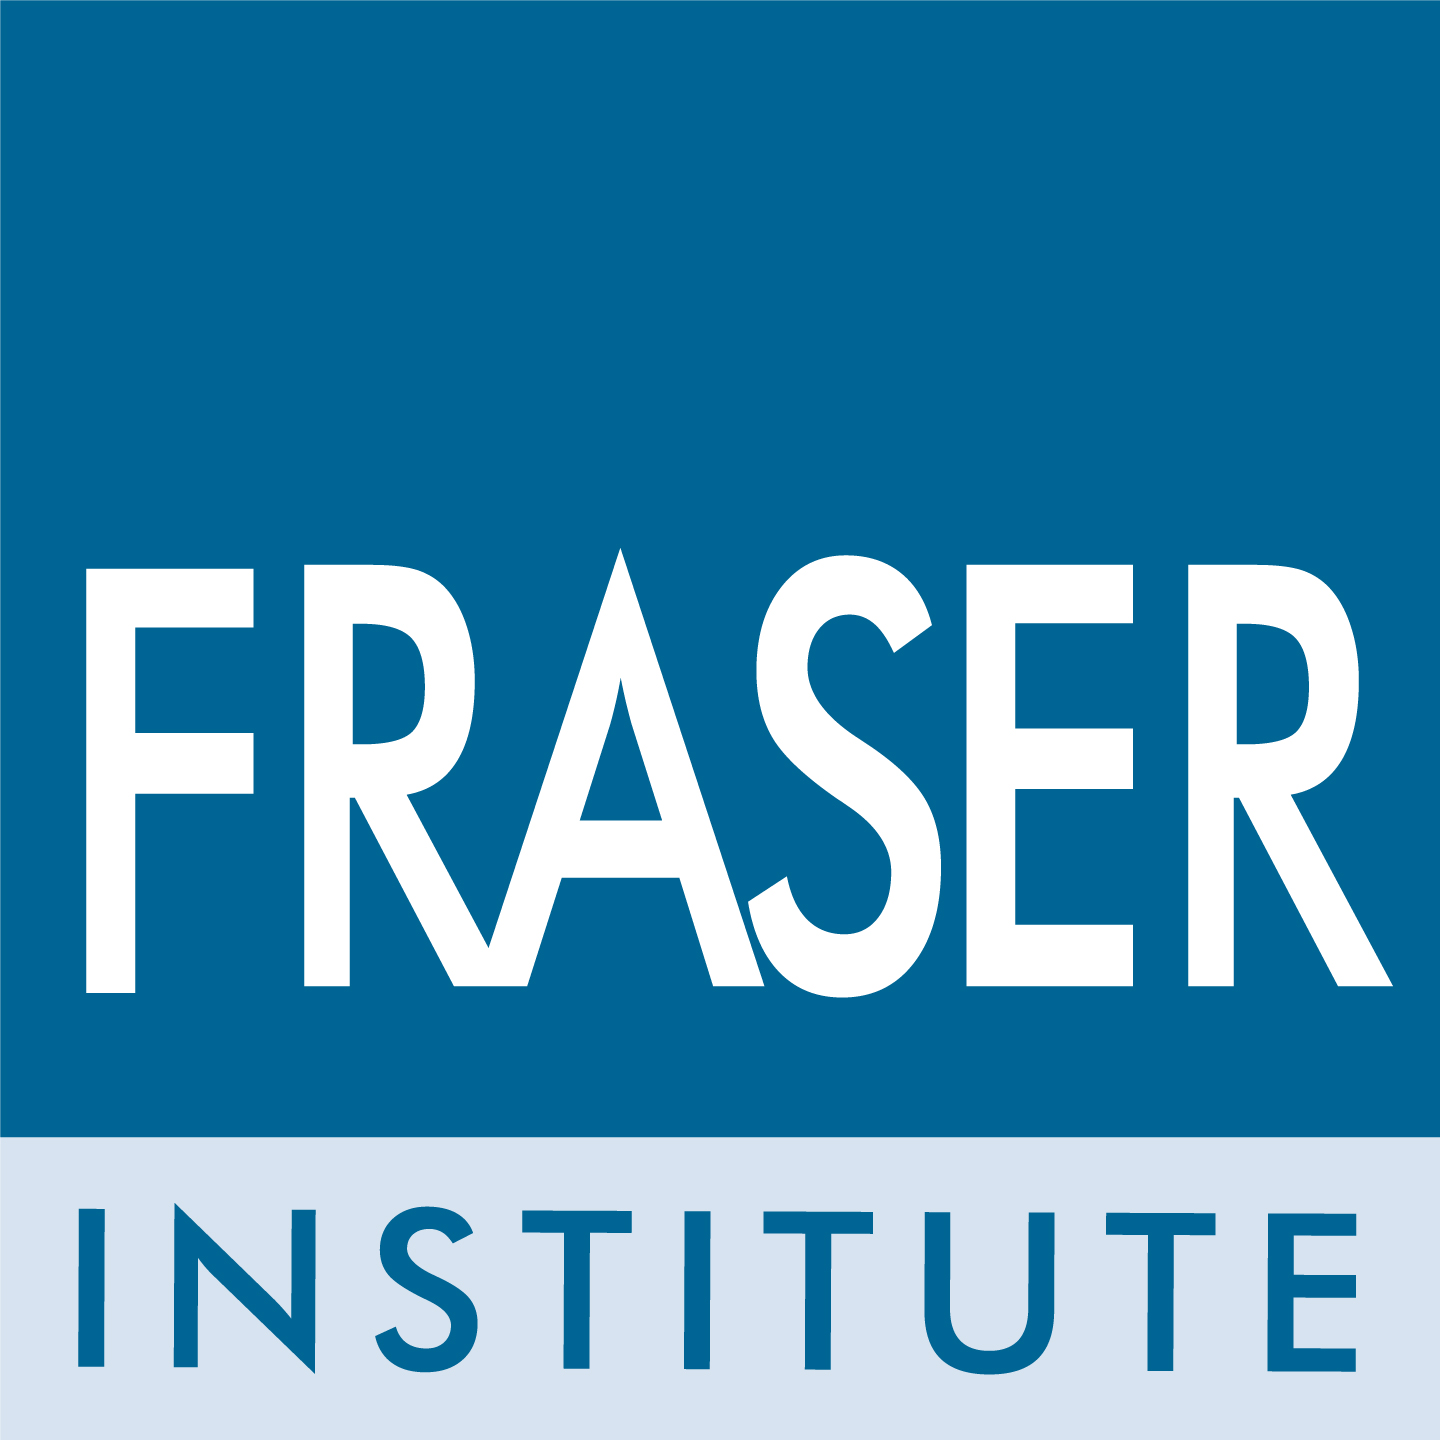 Fraser Institute News Release: New report finds more than 50 countries increased restrictions on women's economic rights from 2016 to 2018